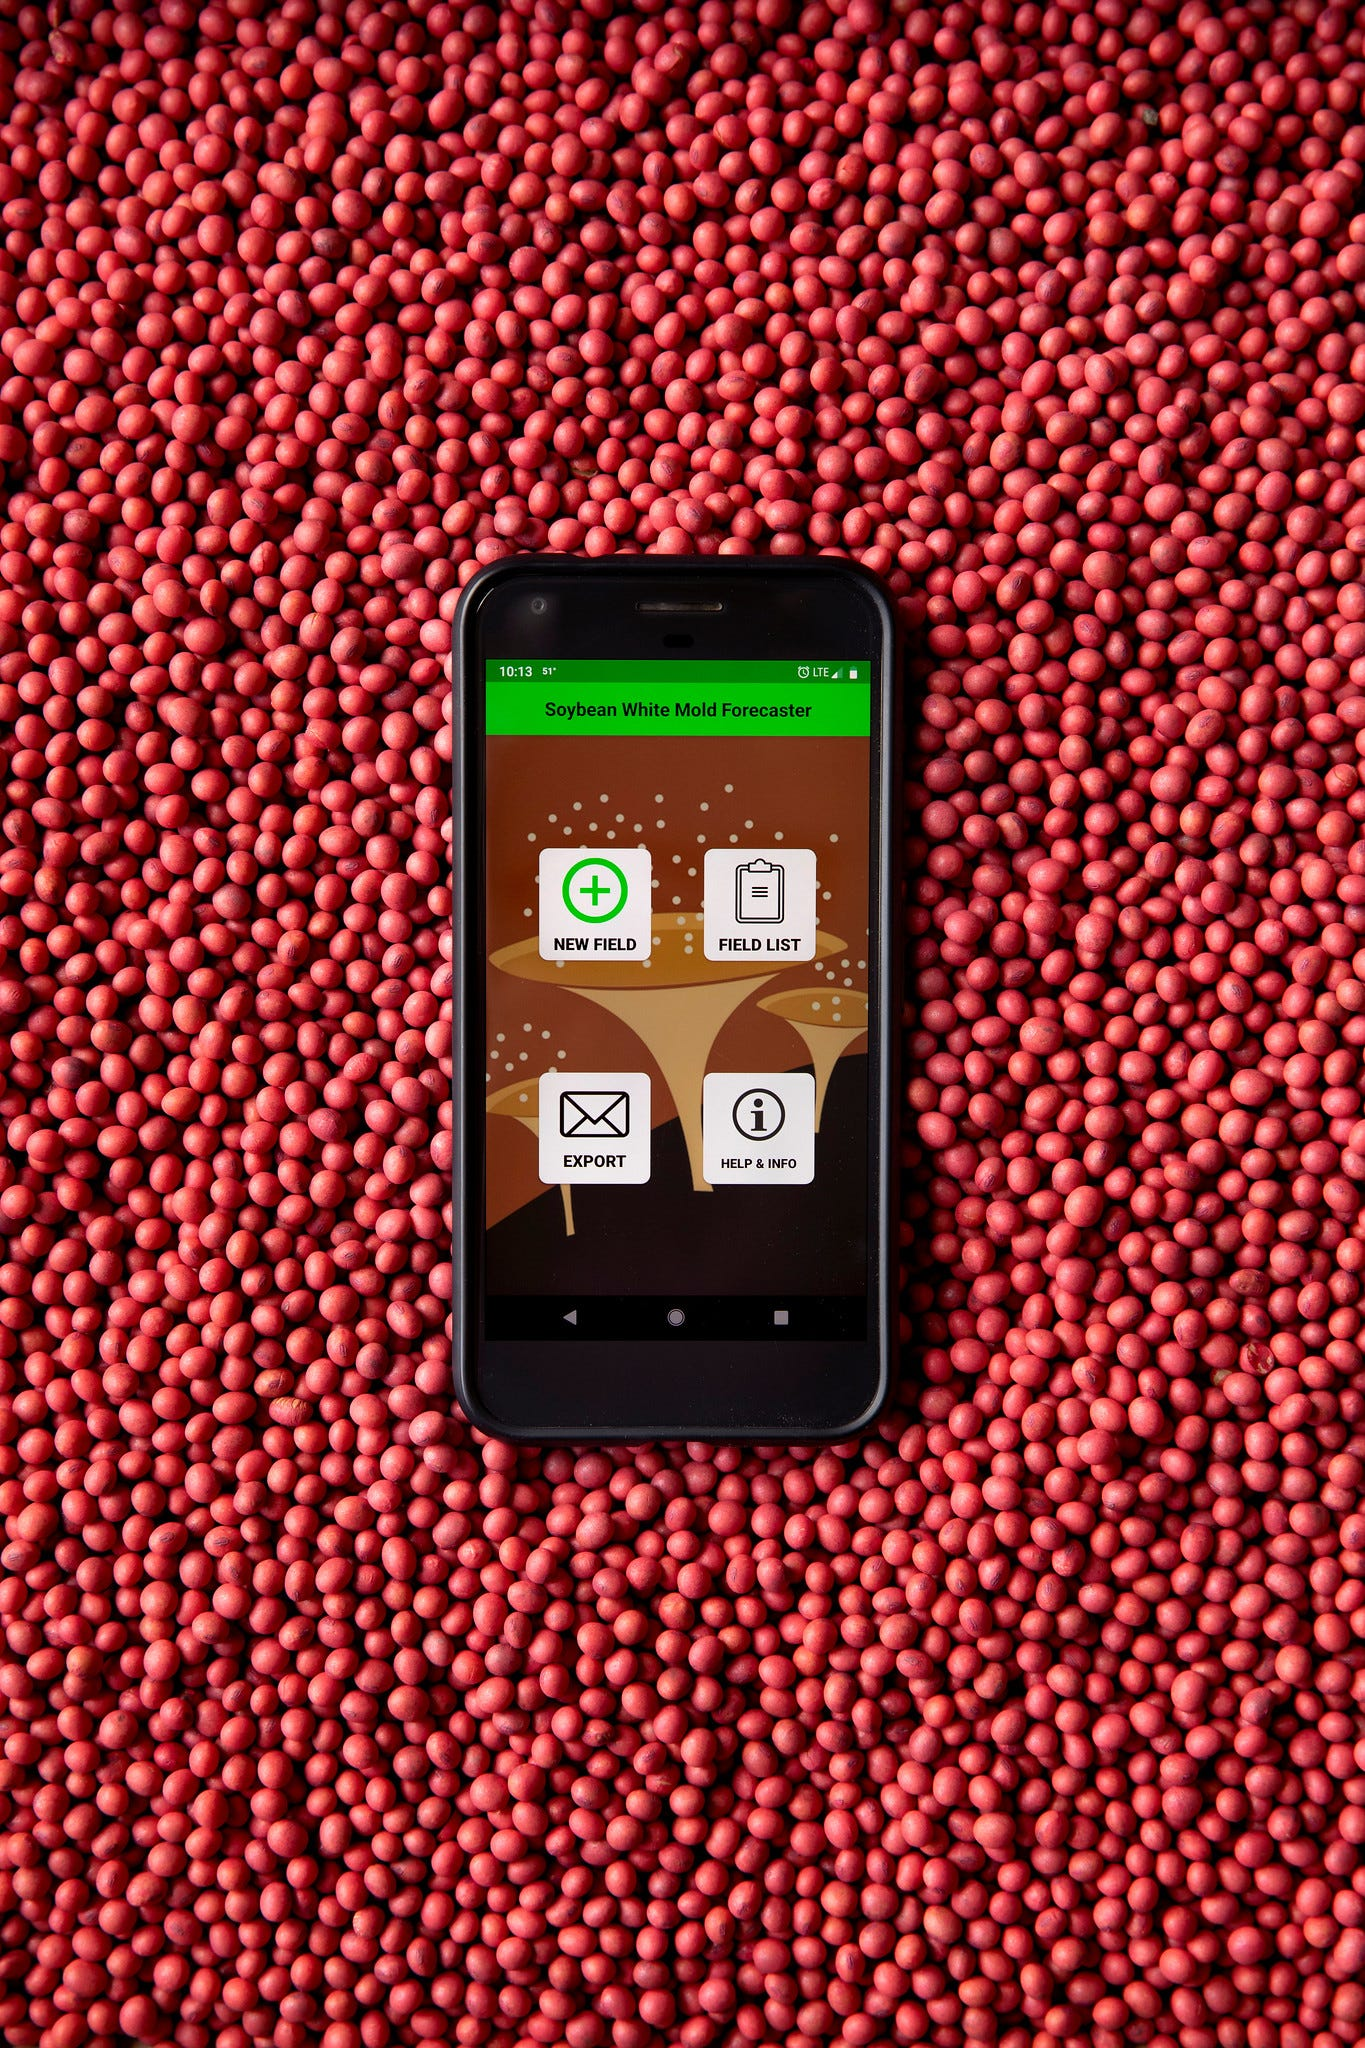 Mobile apps allow farmers to tap into CALS expertise from